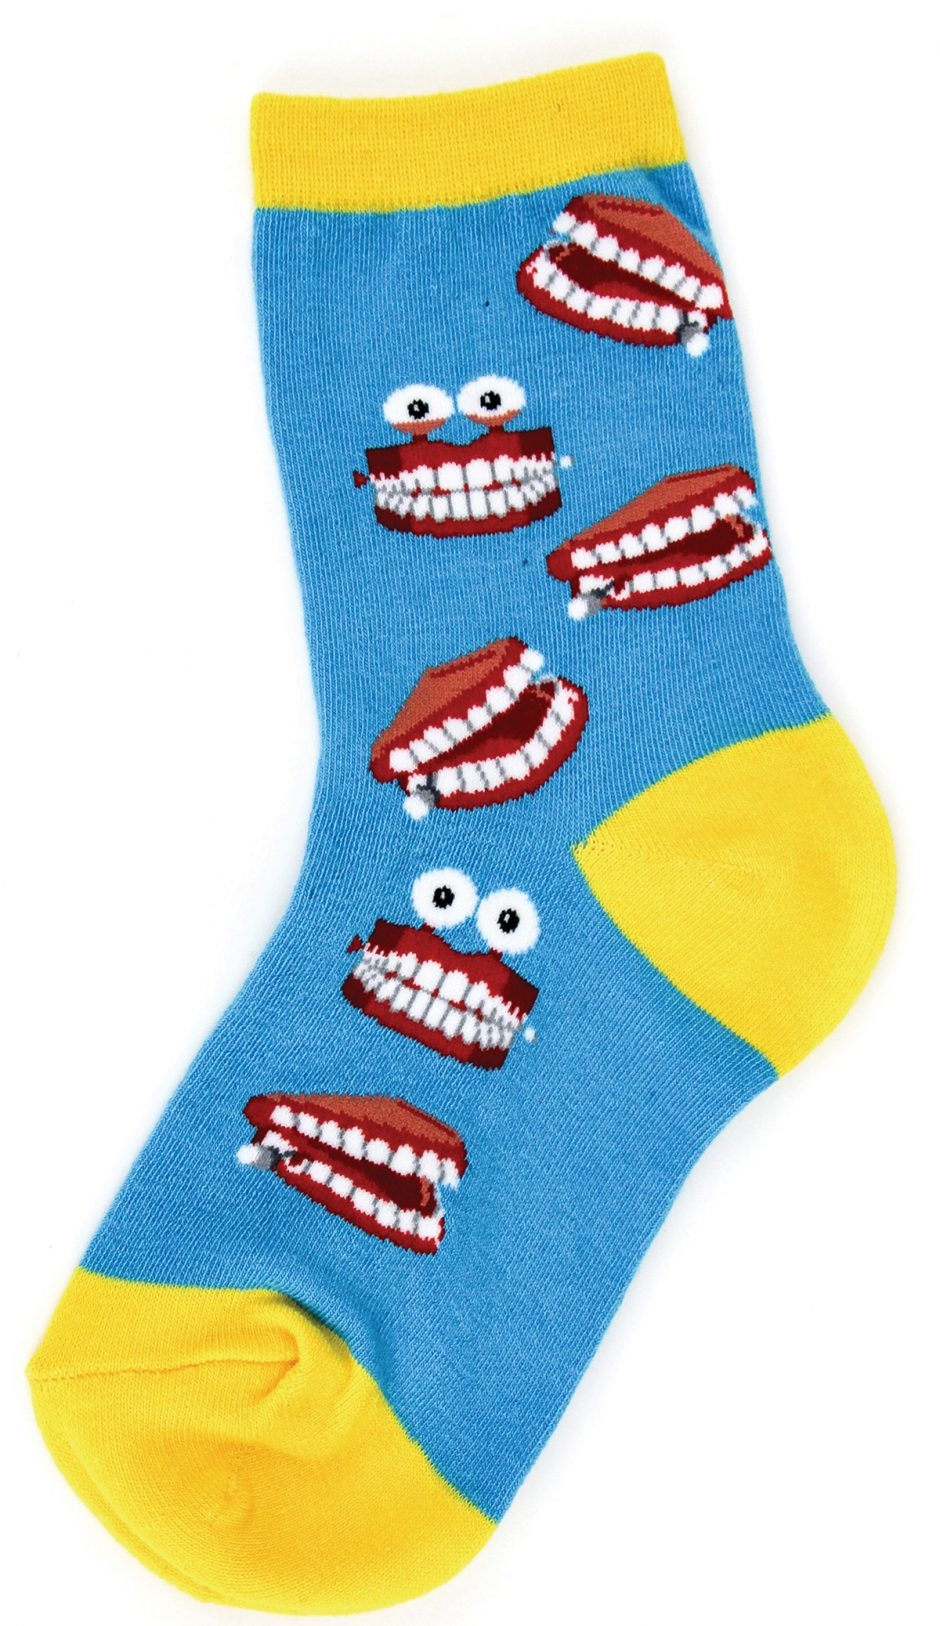 Foot Traffic chattering  teeth sock